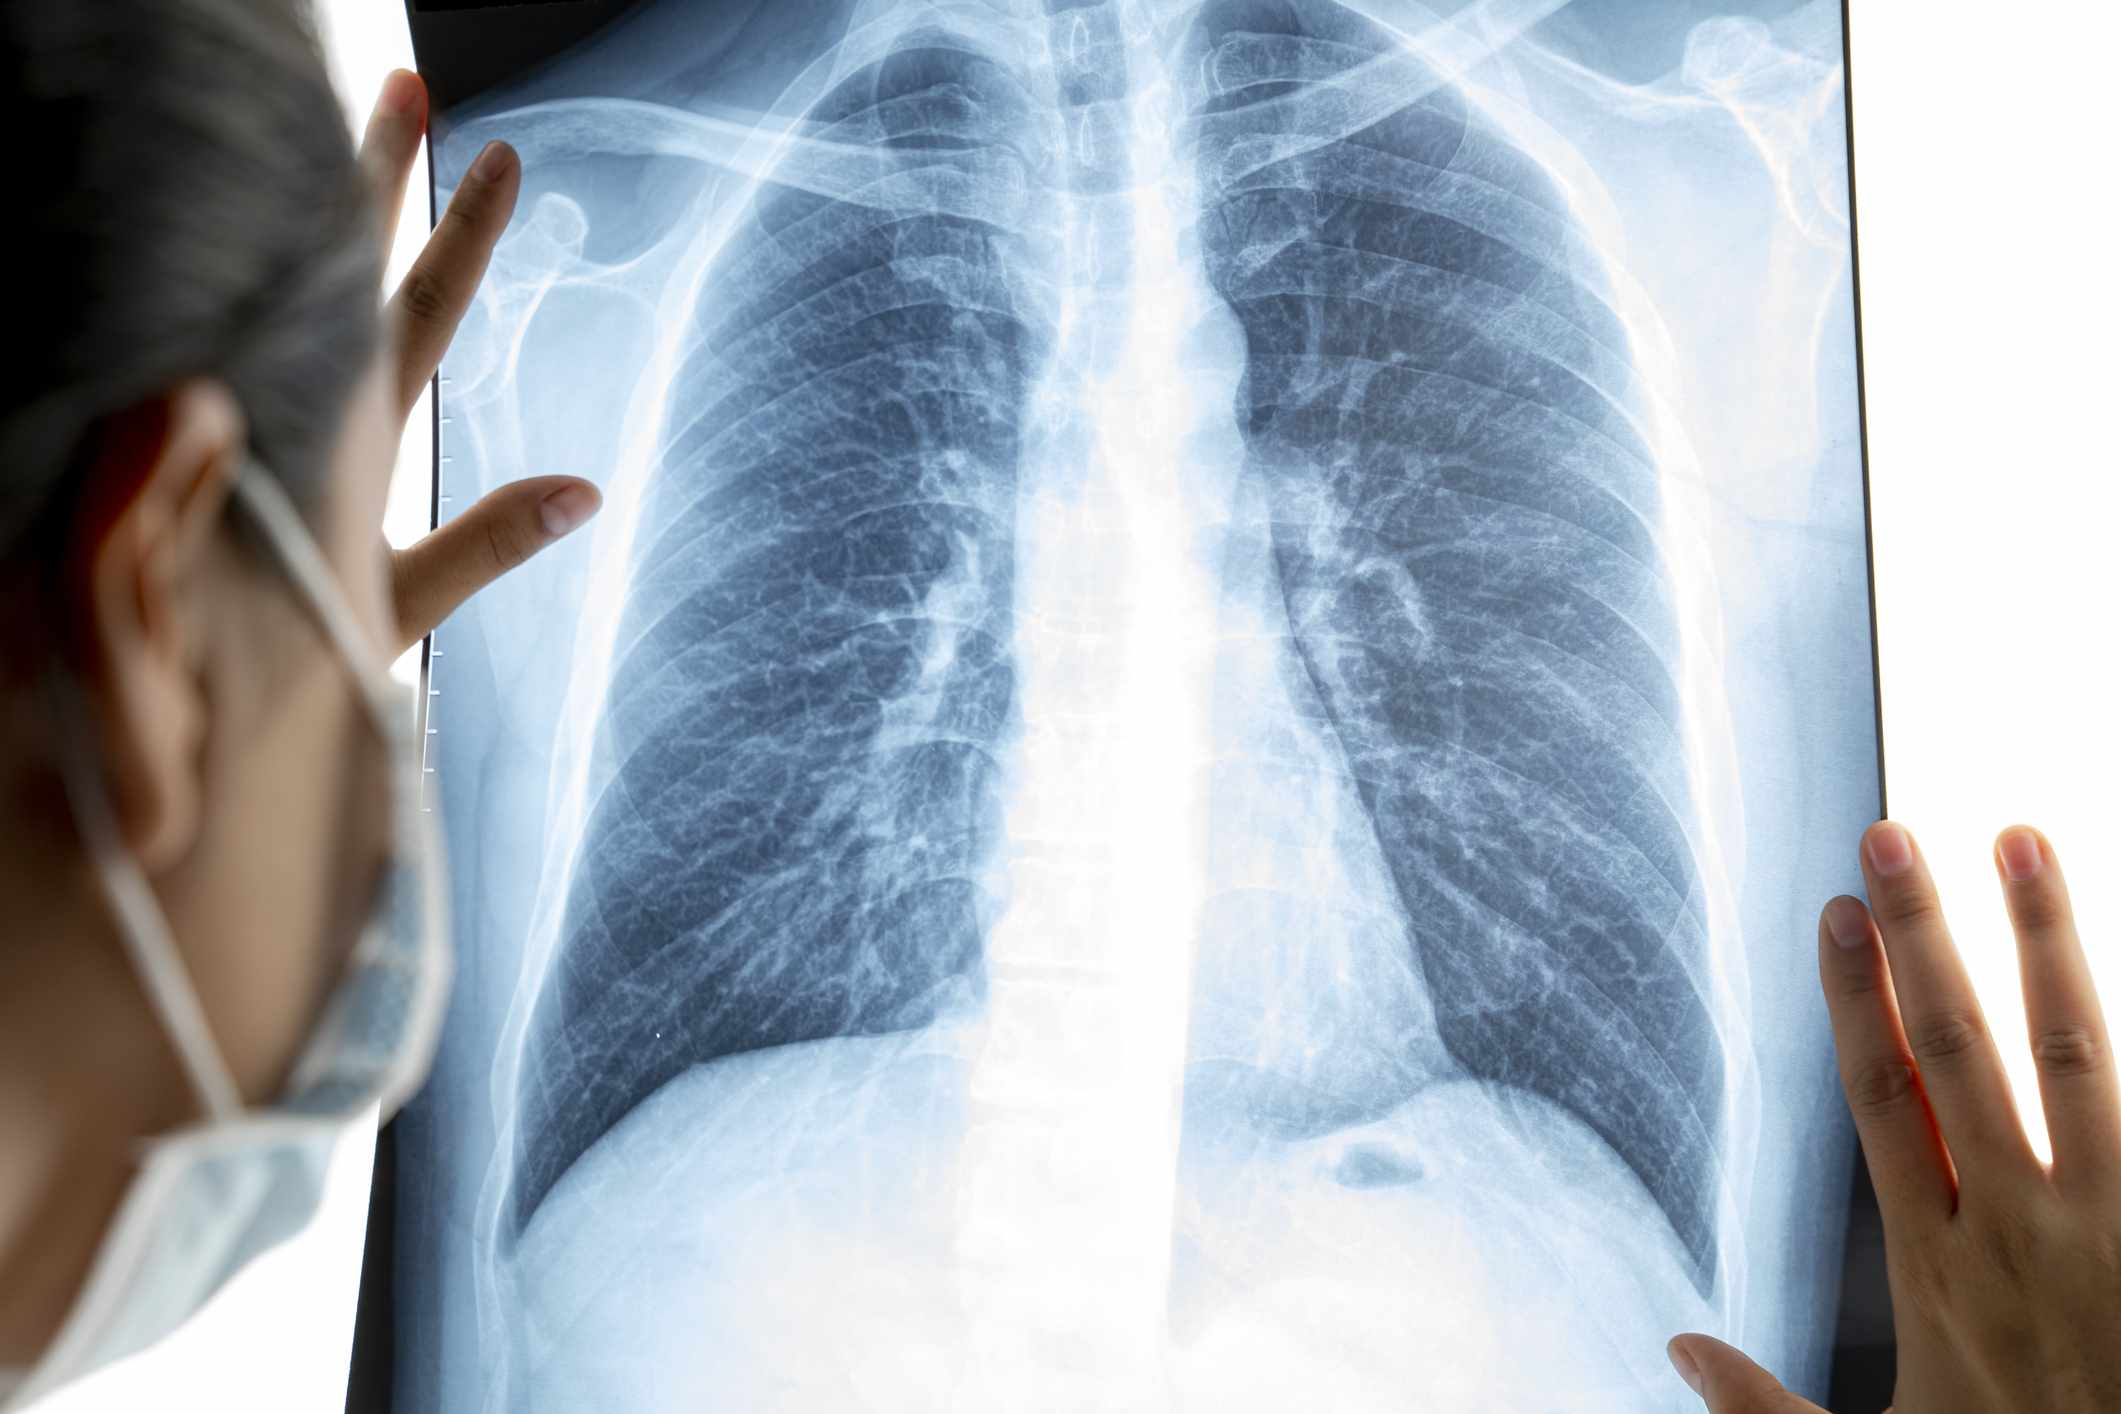 Chest Infection: Overview and More